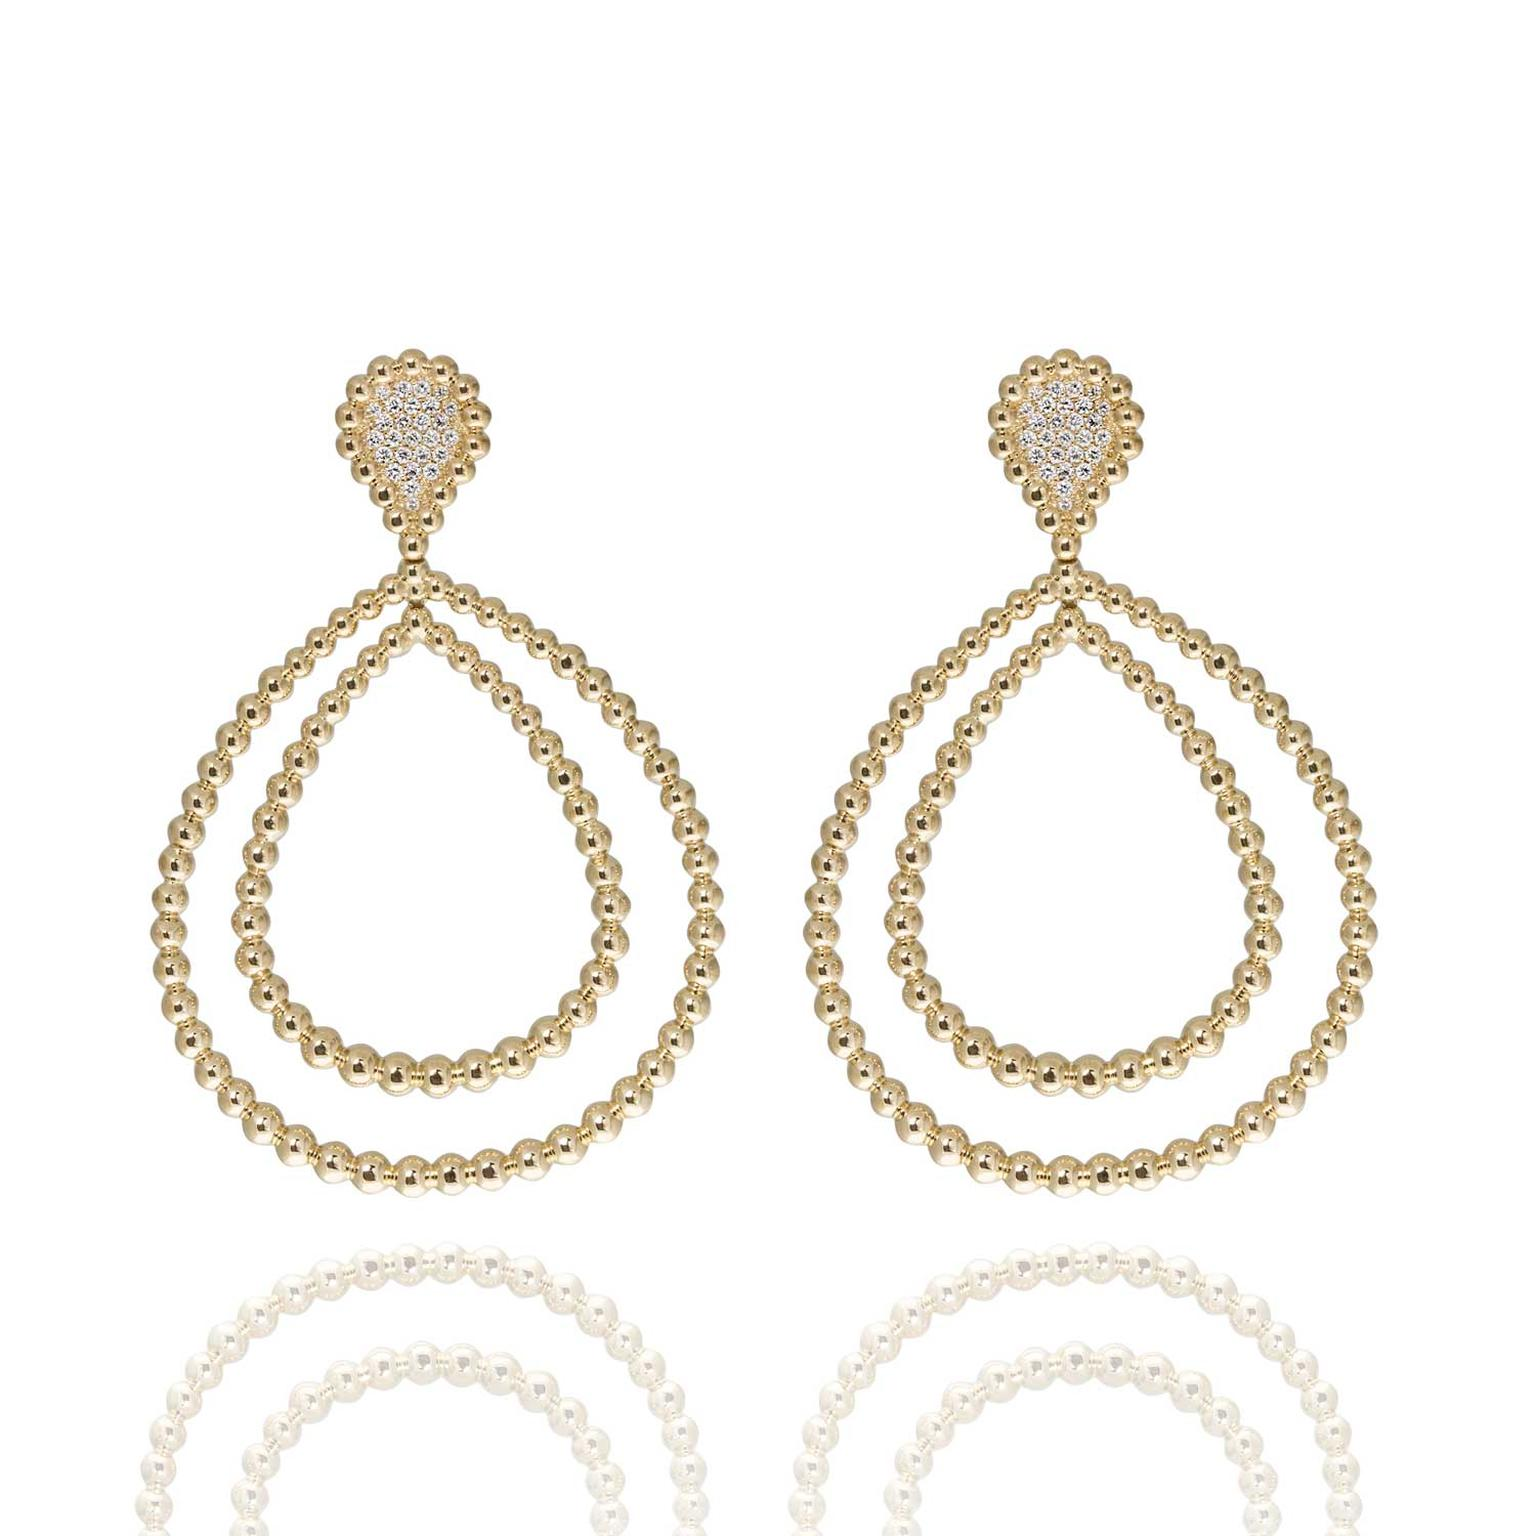 Carla Amorim Guava earrings in yellow gold.